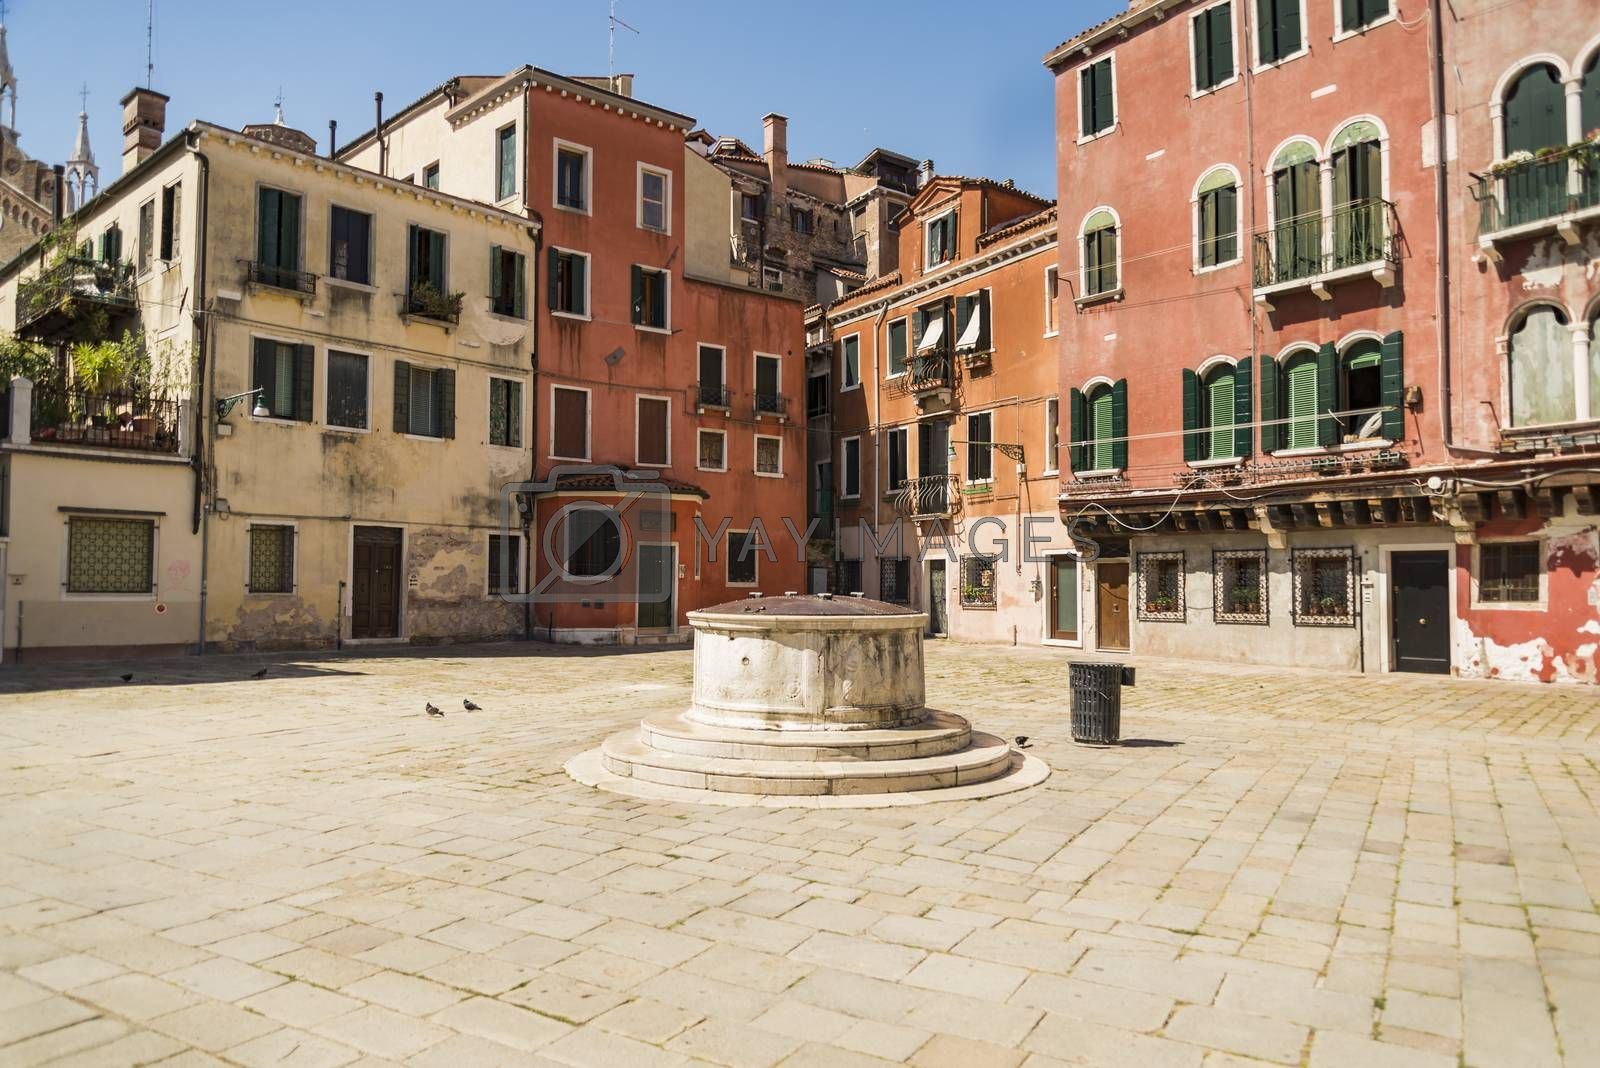 Old buildings and square with a well in Venice, Italy